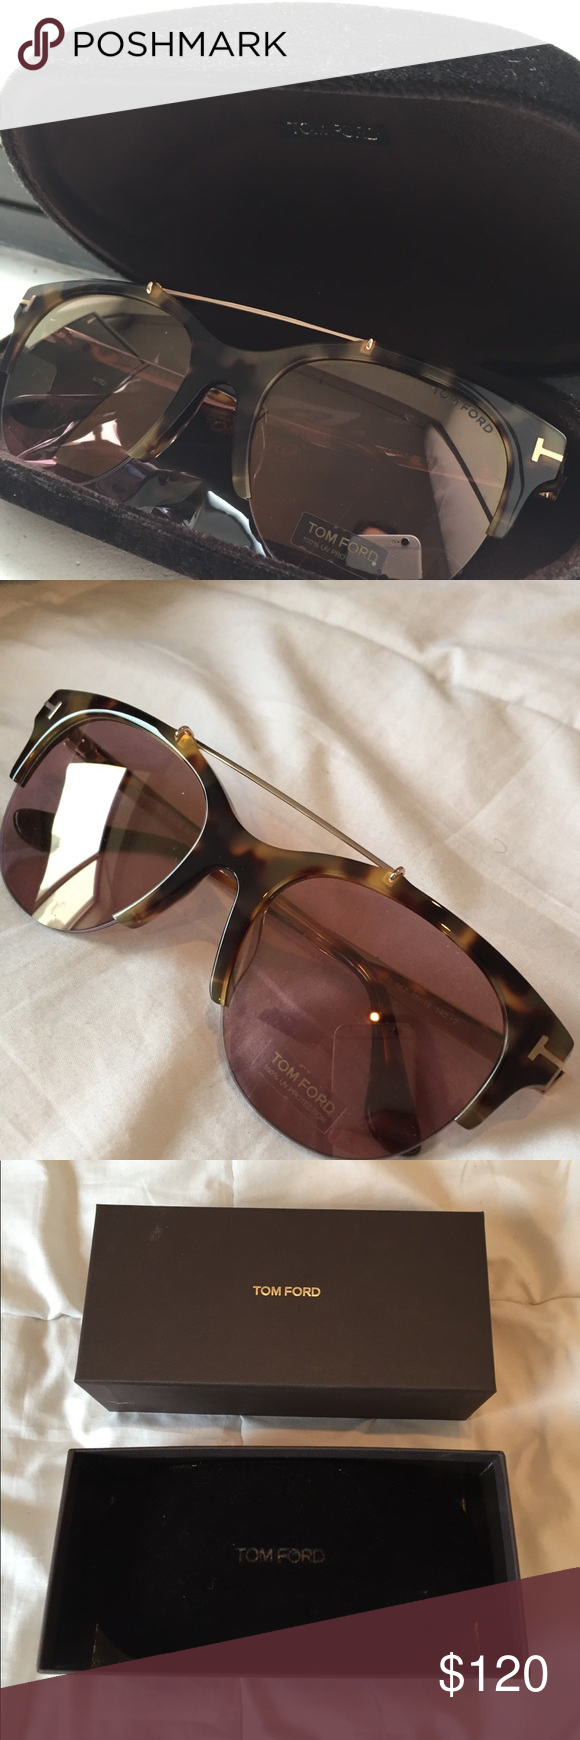 ce1052ecb0333 TOM FORD ADRENNE TORTOISESHELL SUNGLASSES Brown and tan tortoiseshell Tom  Ford Adrenne sunglasses with gradient lenses featuring logo and gold-tone  hardware ...